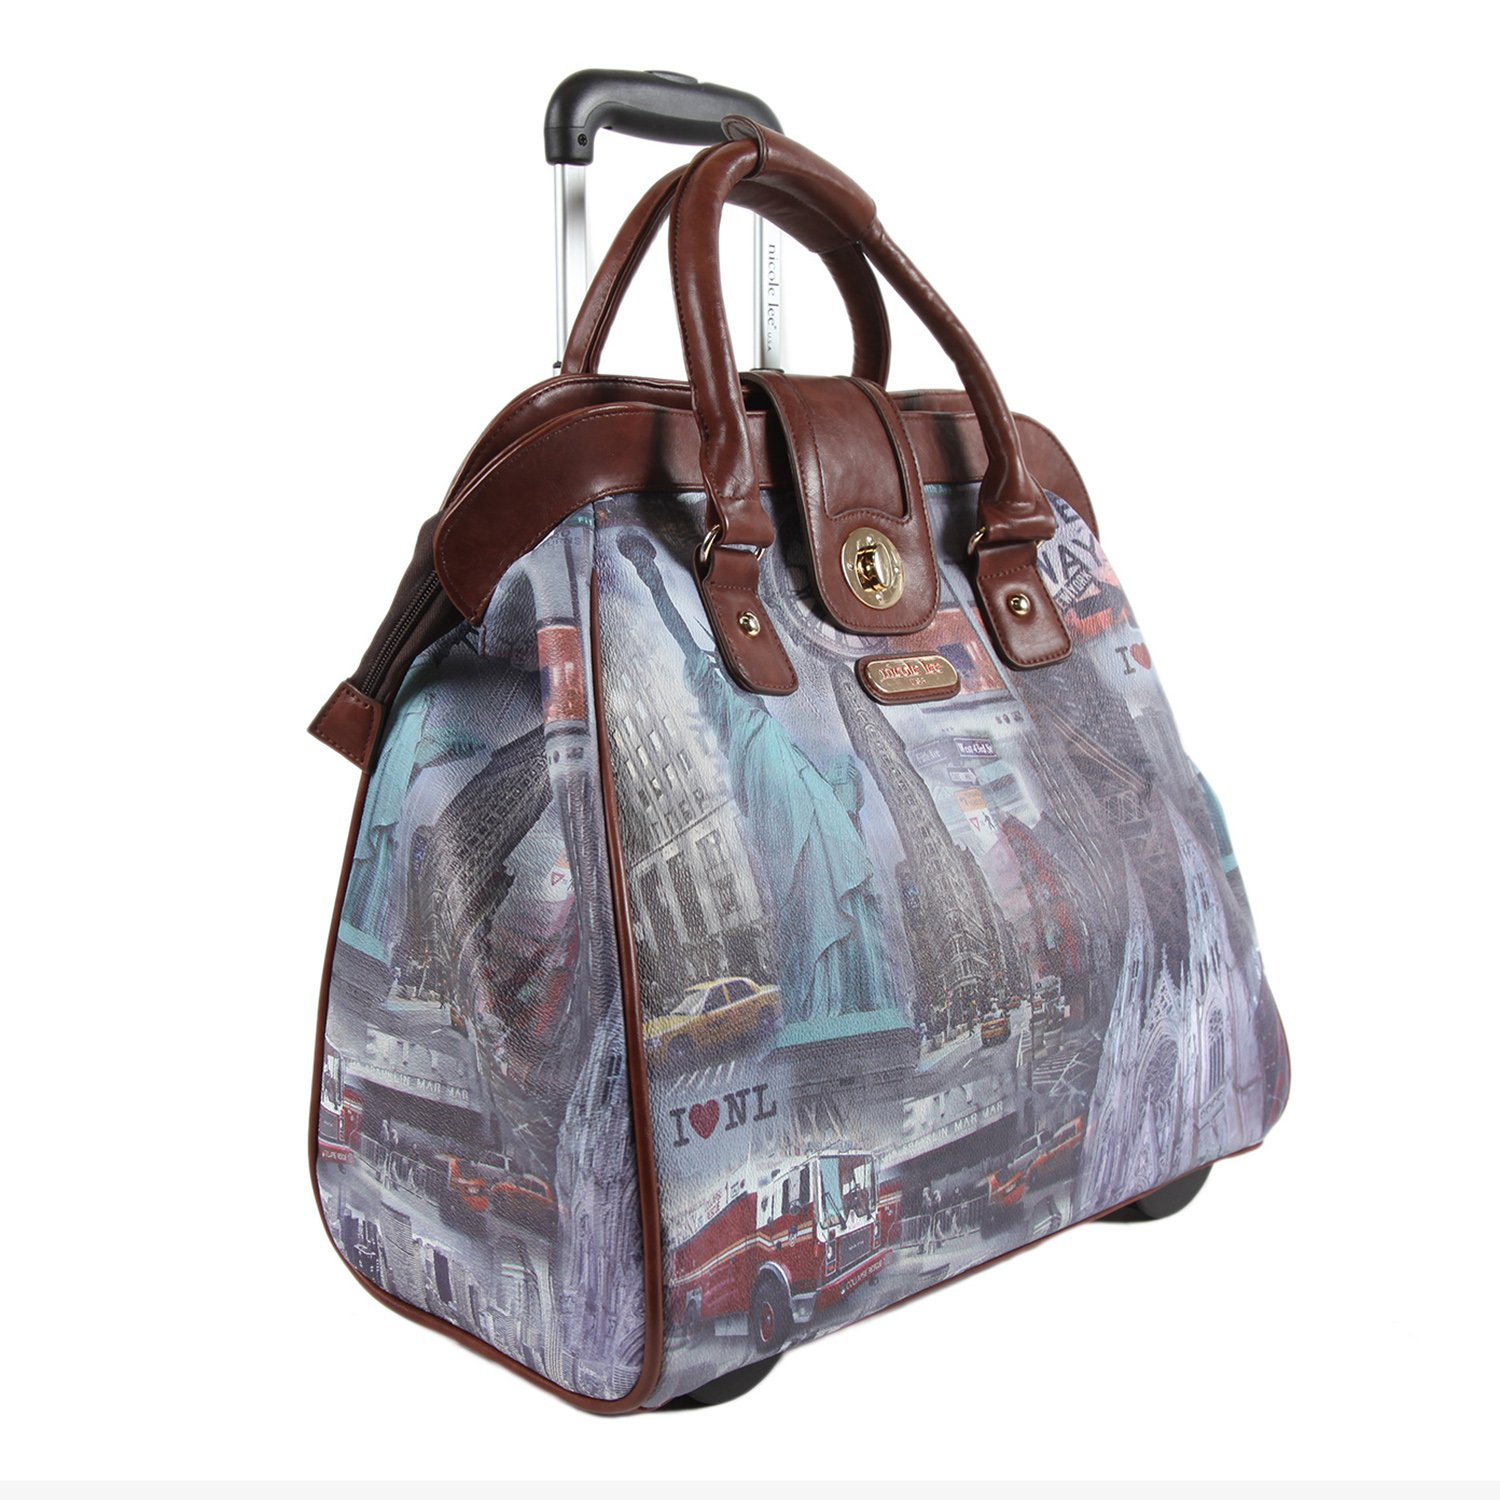 Nicole Lee Rolling Business Tote, New York, One Size